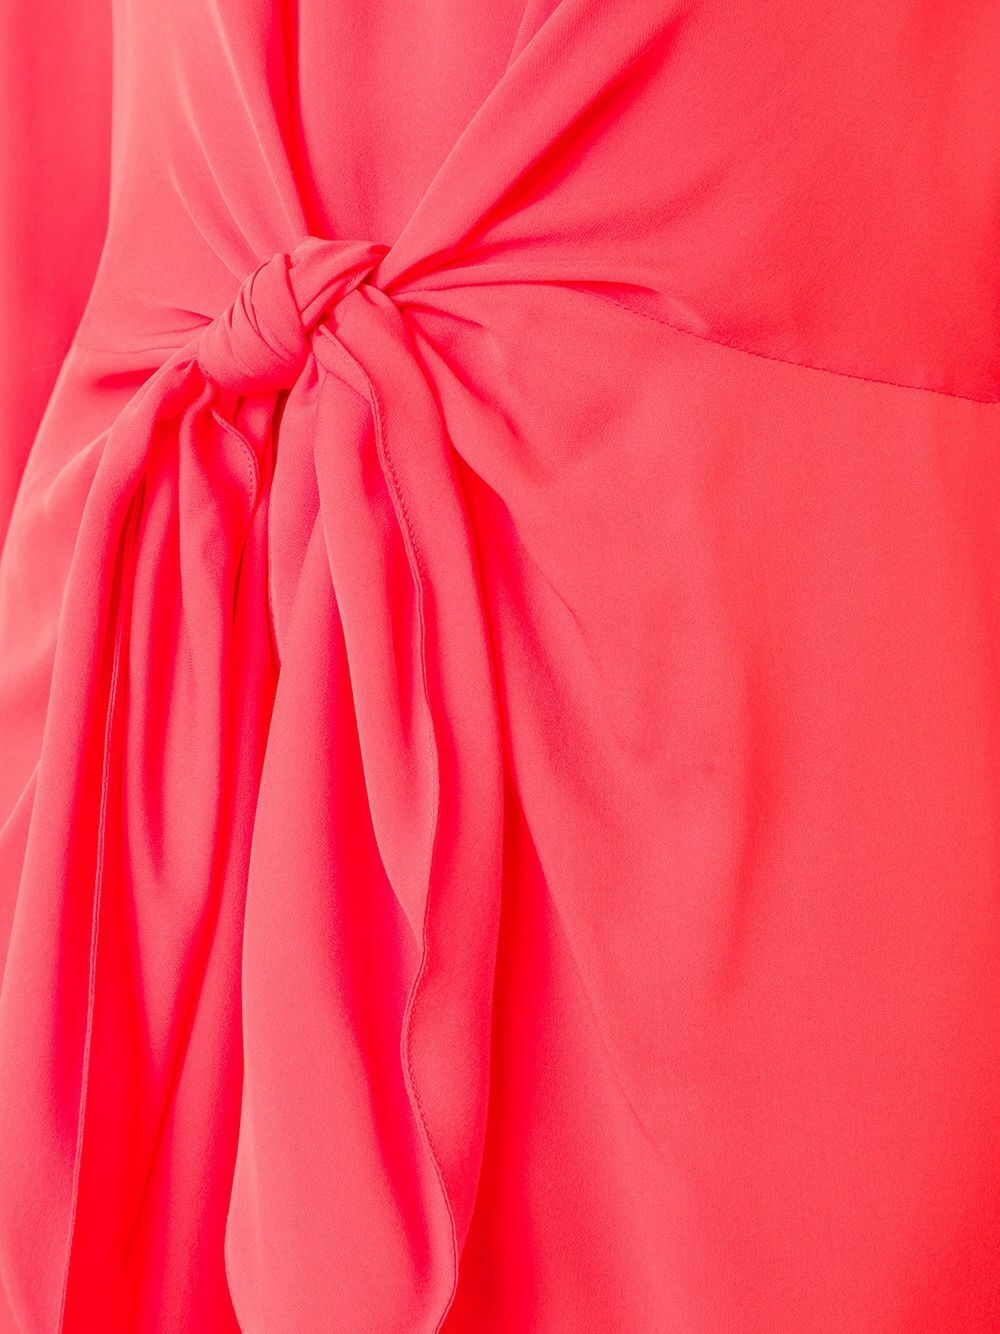 3.1 PHILLIP LIM knot knot knot detail dress NTW Size 6 5602c6